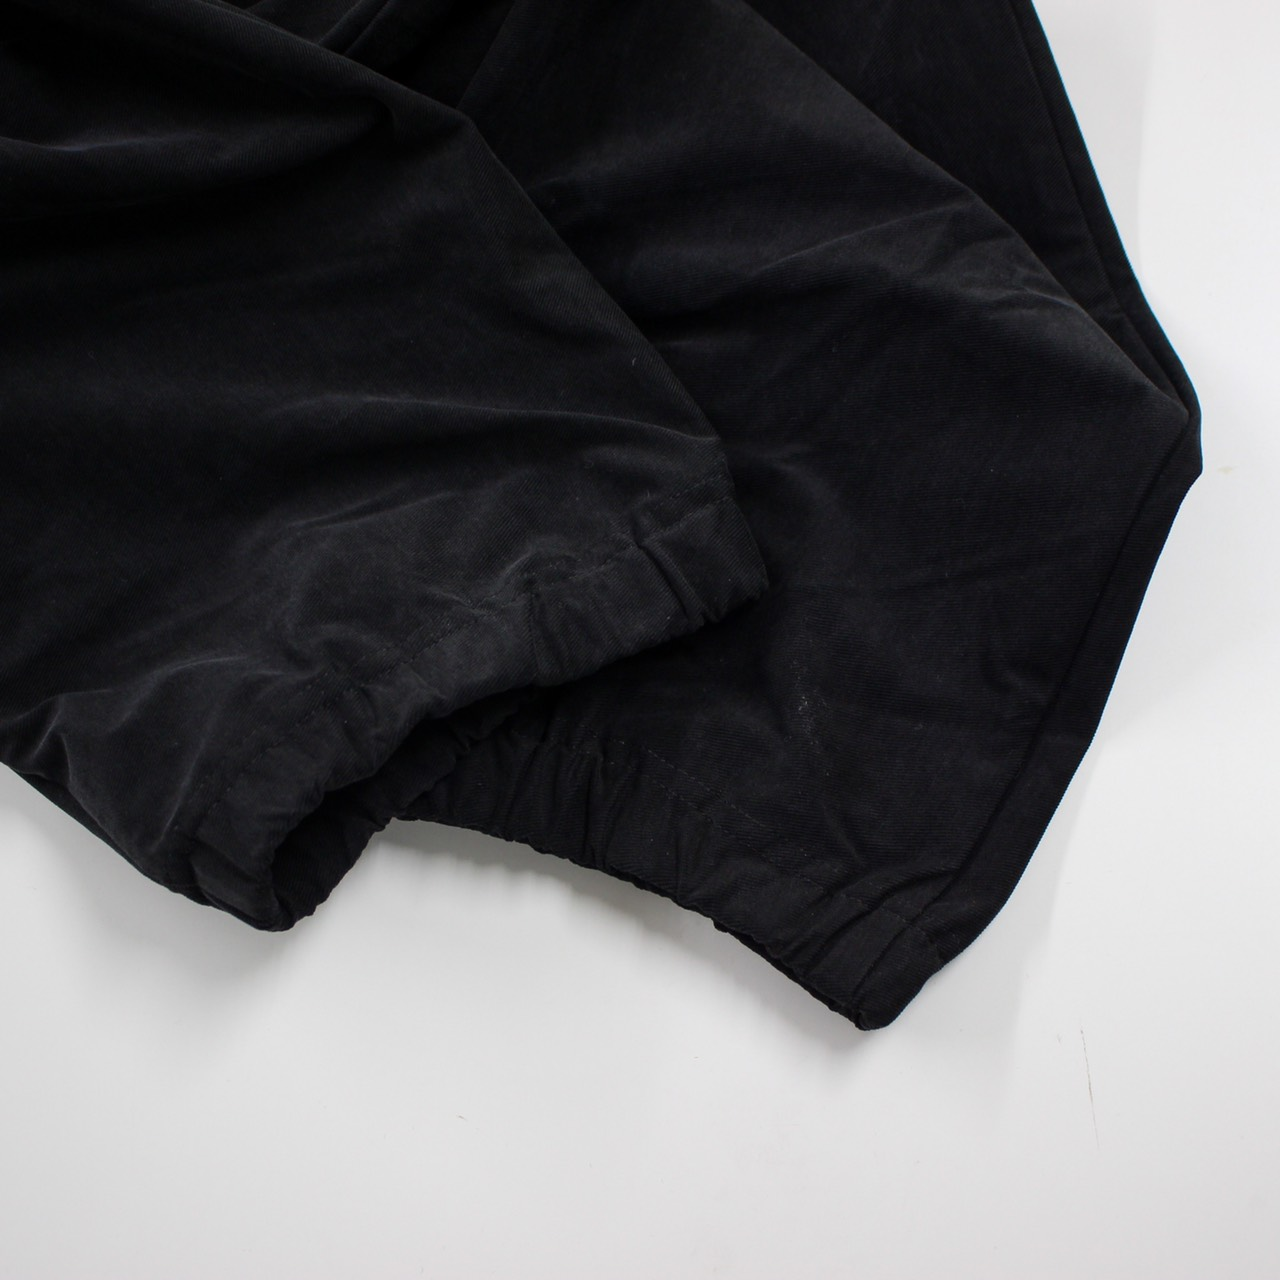 【sold out】 Direction OCEANS Fibril Cupra Easy Pants